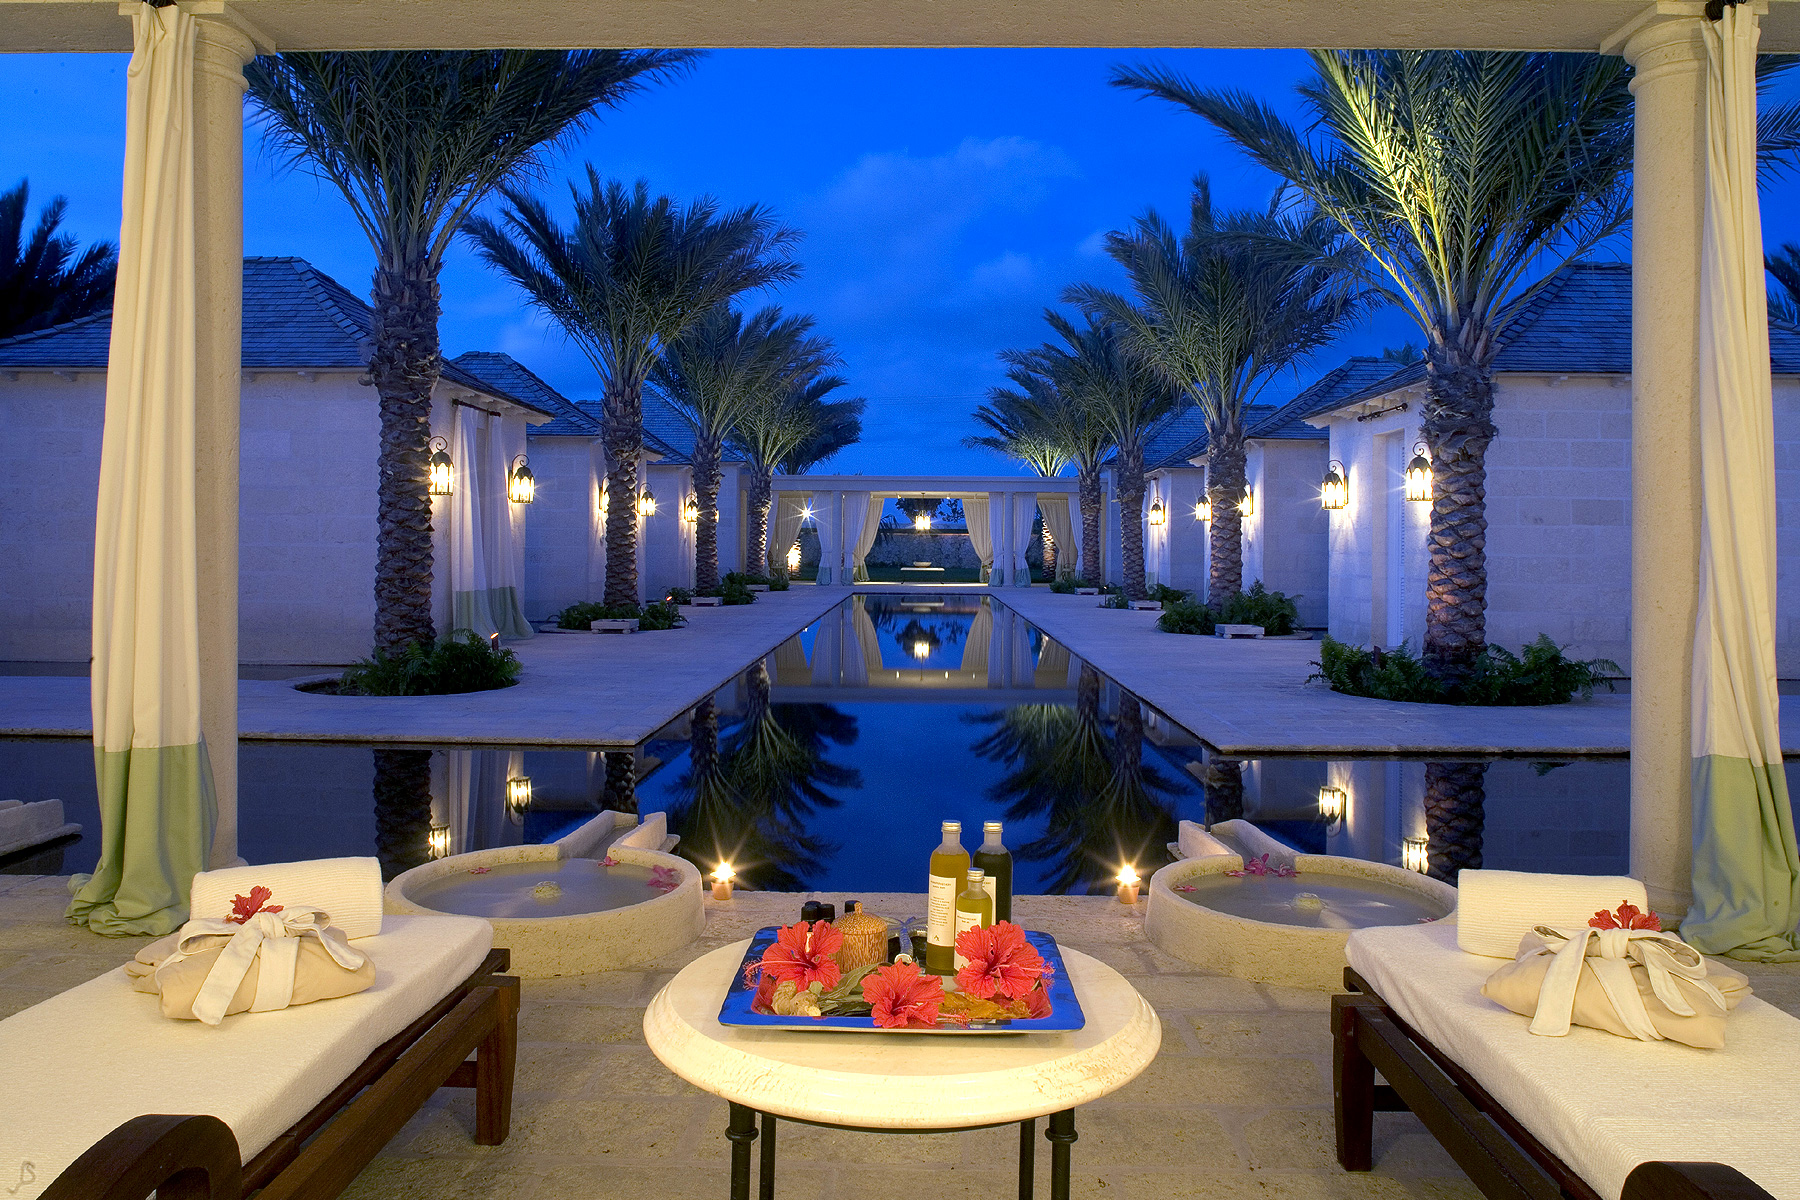 Best spa vacations trip sense for Best spa vacations in us